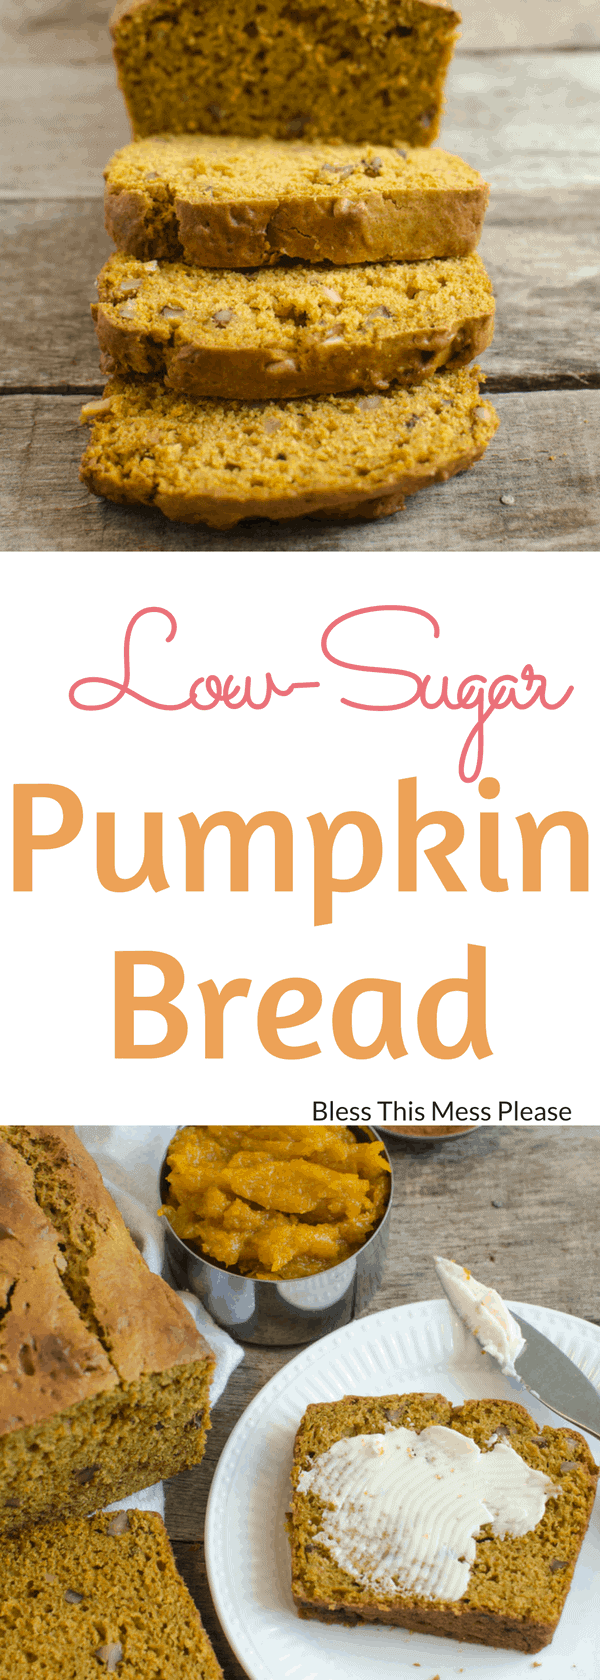 Low-Sugar Pumpkin Bread